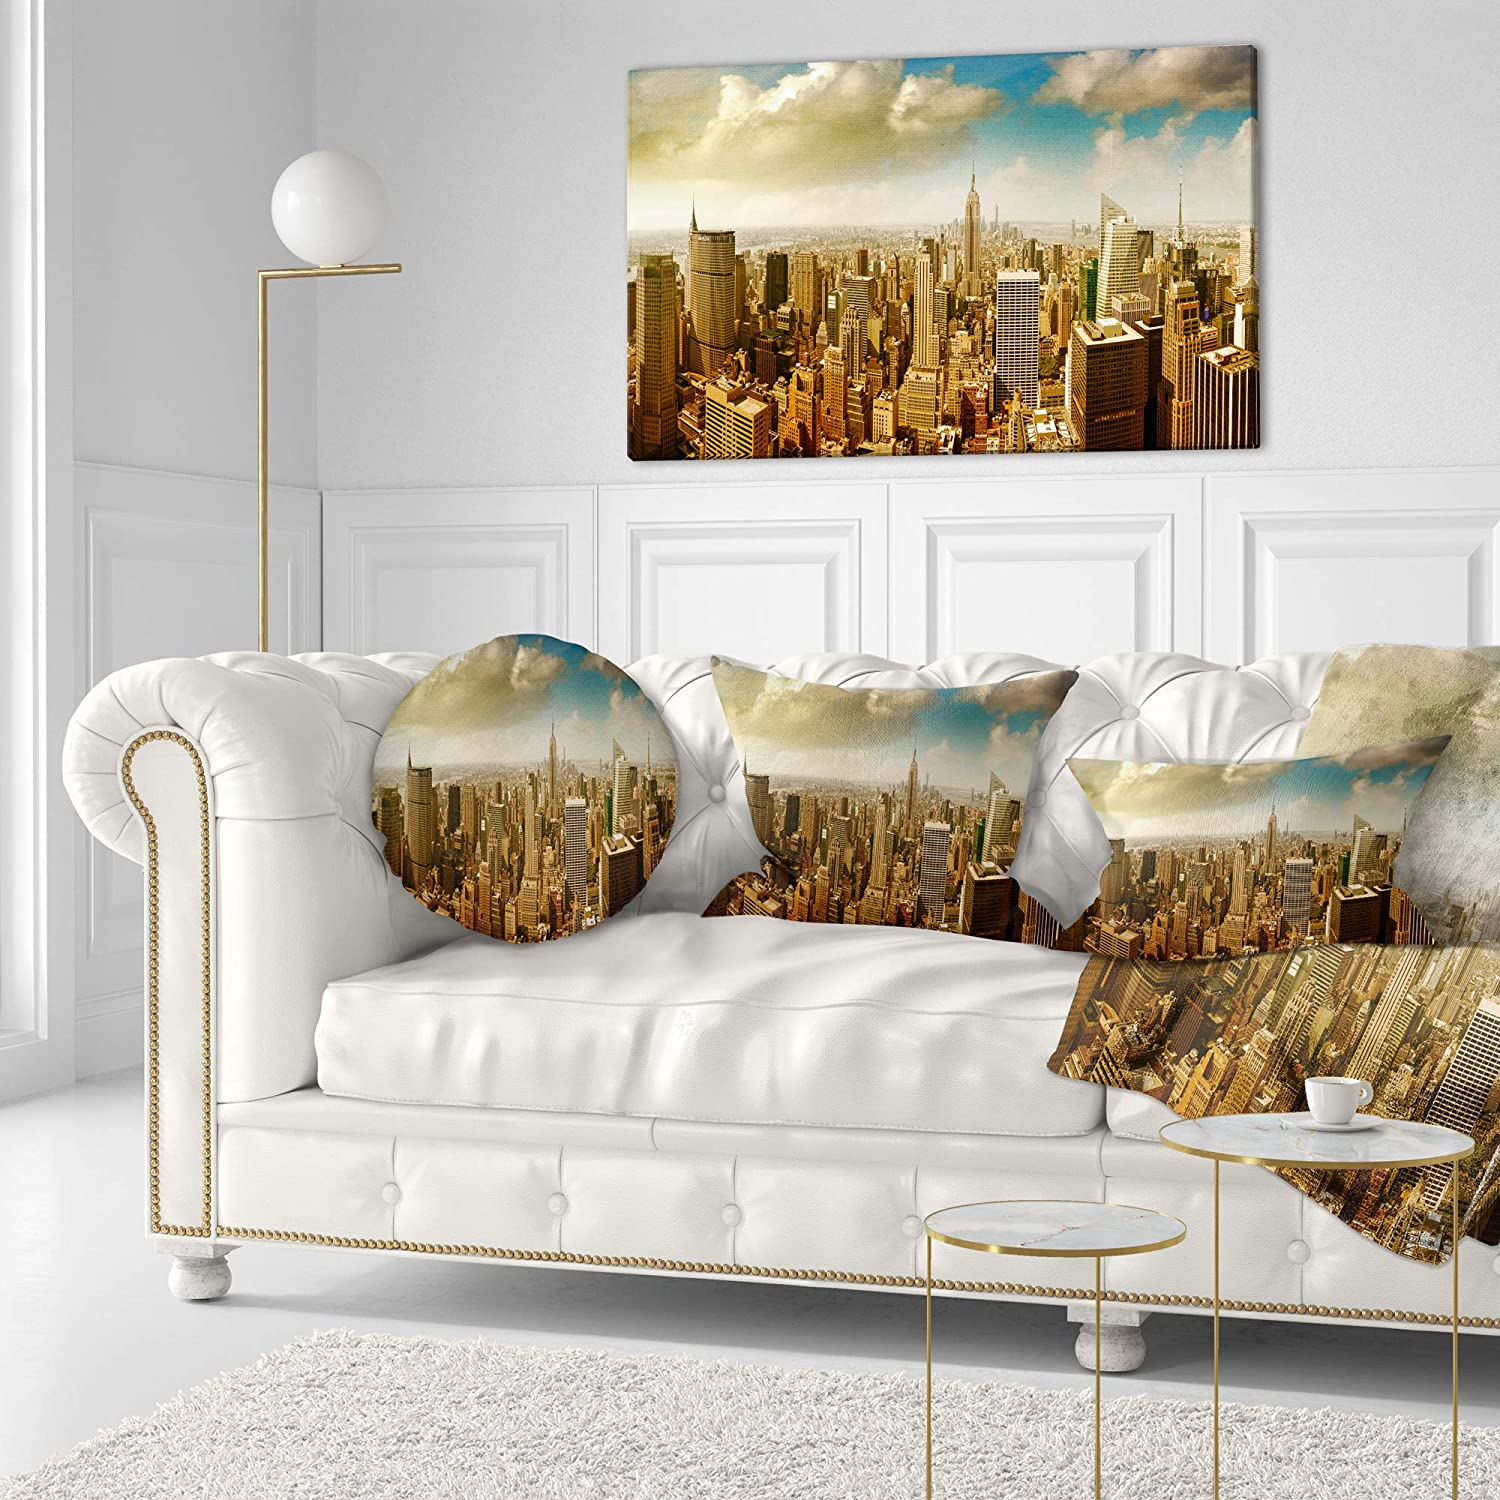 Insert Printed On Both Side Designart CU14333-20-20-C Midtown and Downtown Manhattan Modern Cityscape Round Cushion Cover for Living Room Sofa Throw Pillow 20